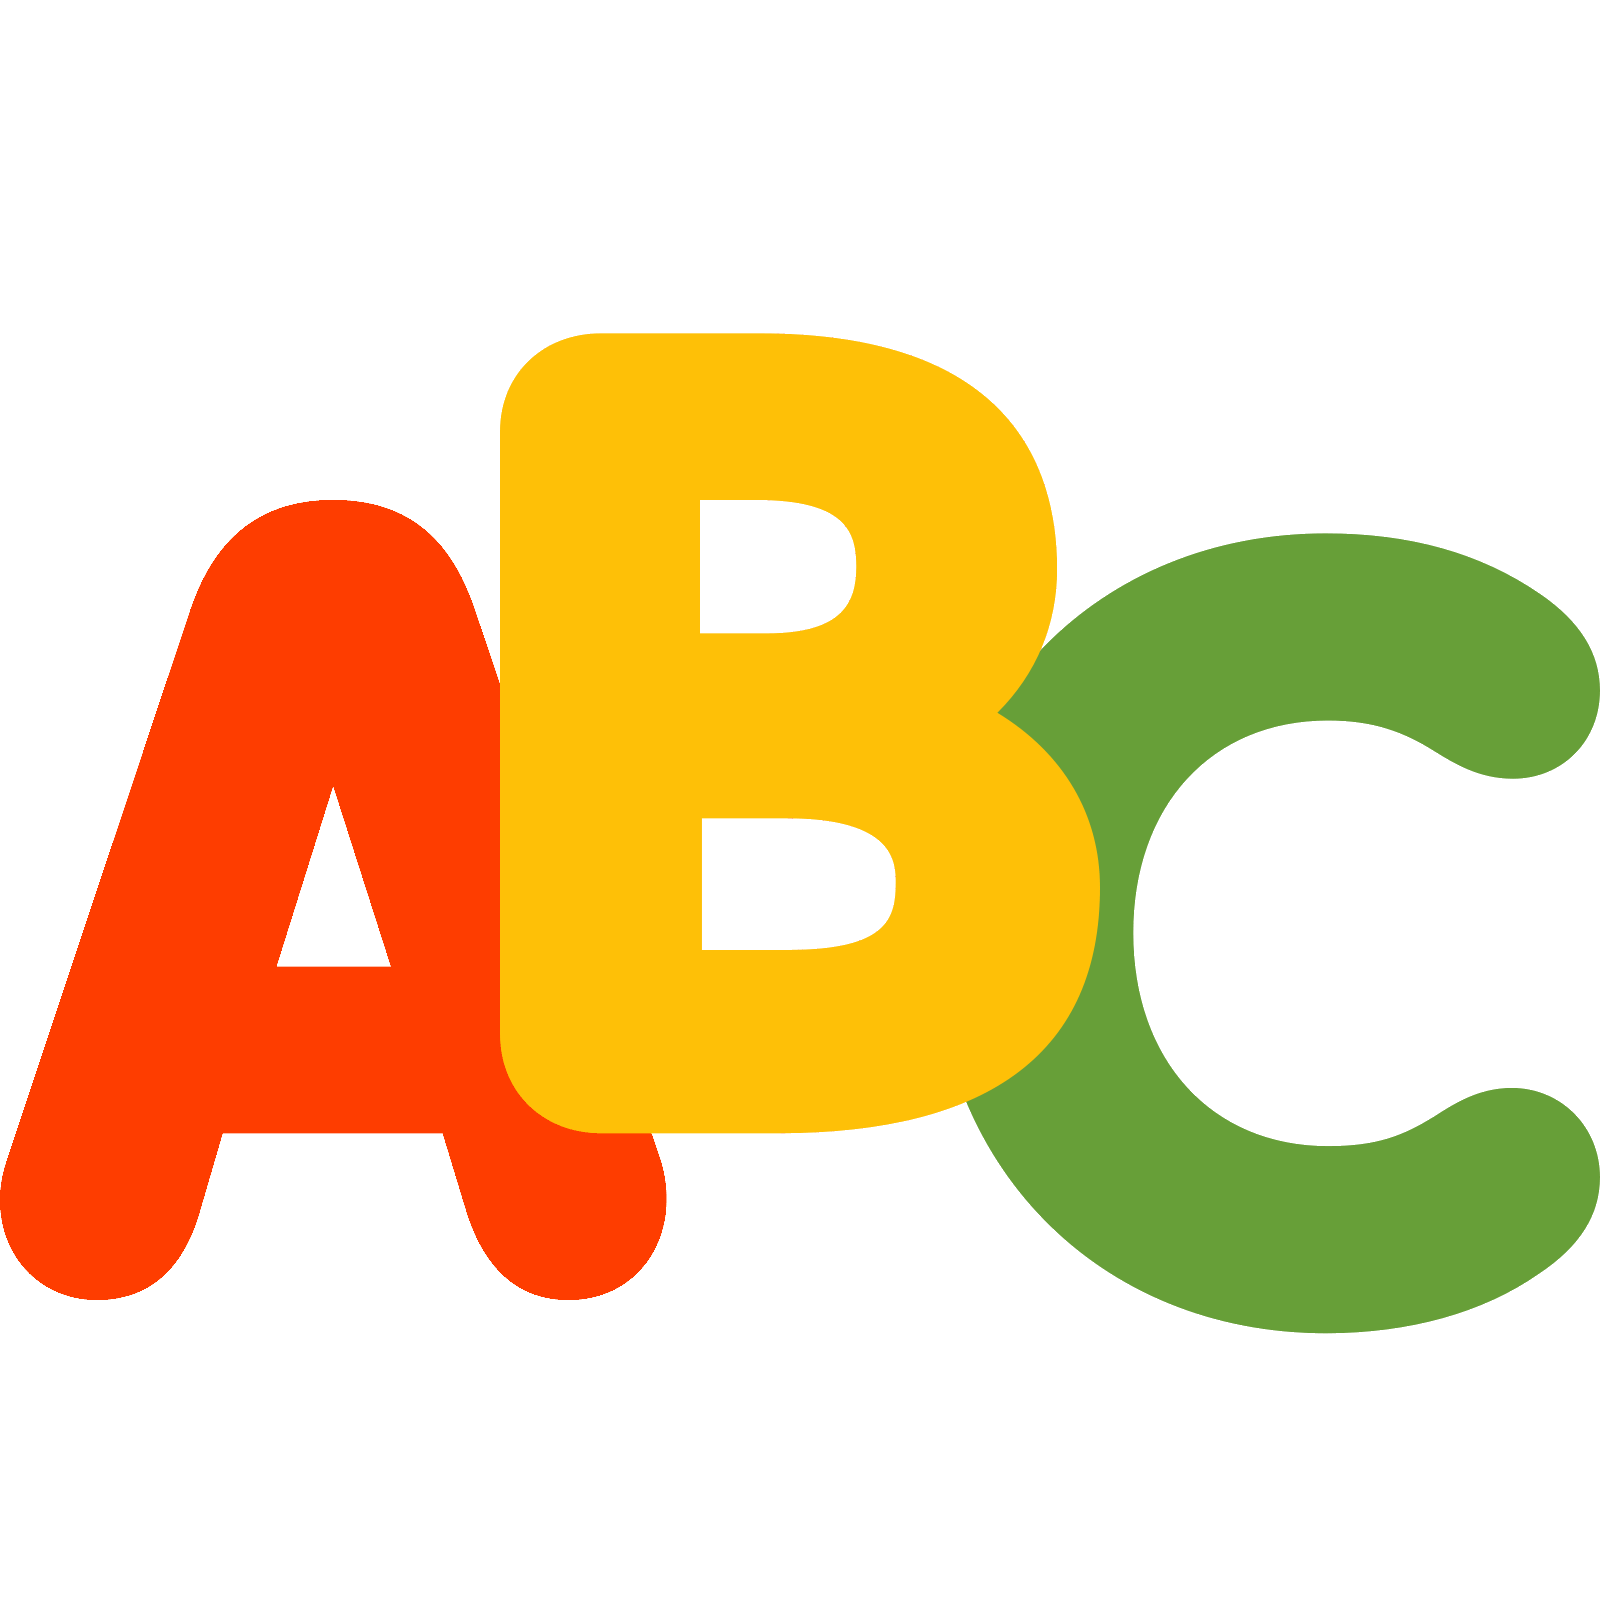 Abc Vector PNG - 103260